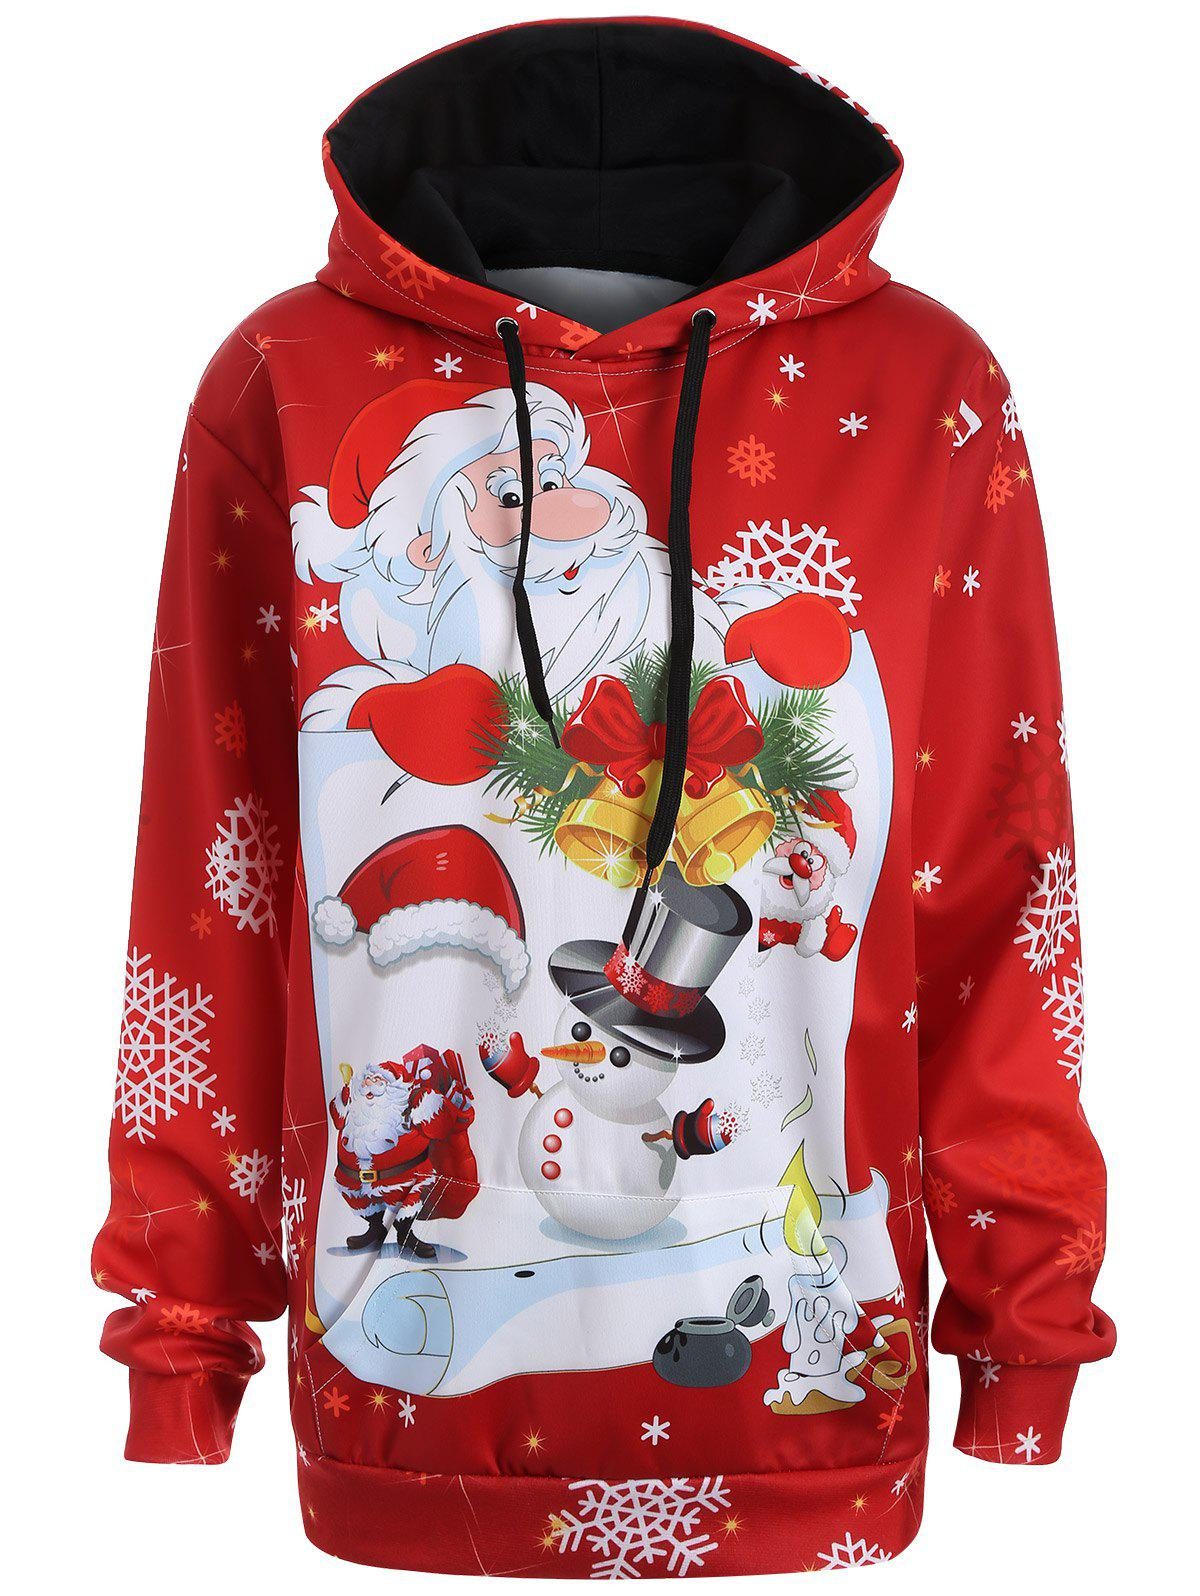 Christmas Plus Size Snowman Kangaroo Pocket HoodieWOMEN<br><br>Size: L; Color: RED; Material: Polyester; Shirt Length: Long; Sleeve Length: Full; Style: Casual; Pattern Style: Figure; Season: Fall,Spring; Weight: 0.3700kg; Package Contents: 1 x Hoodie;